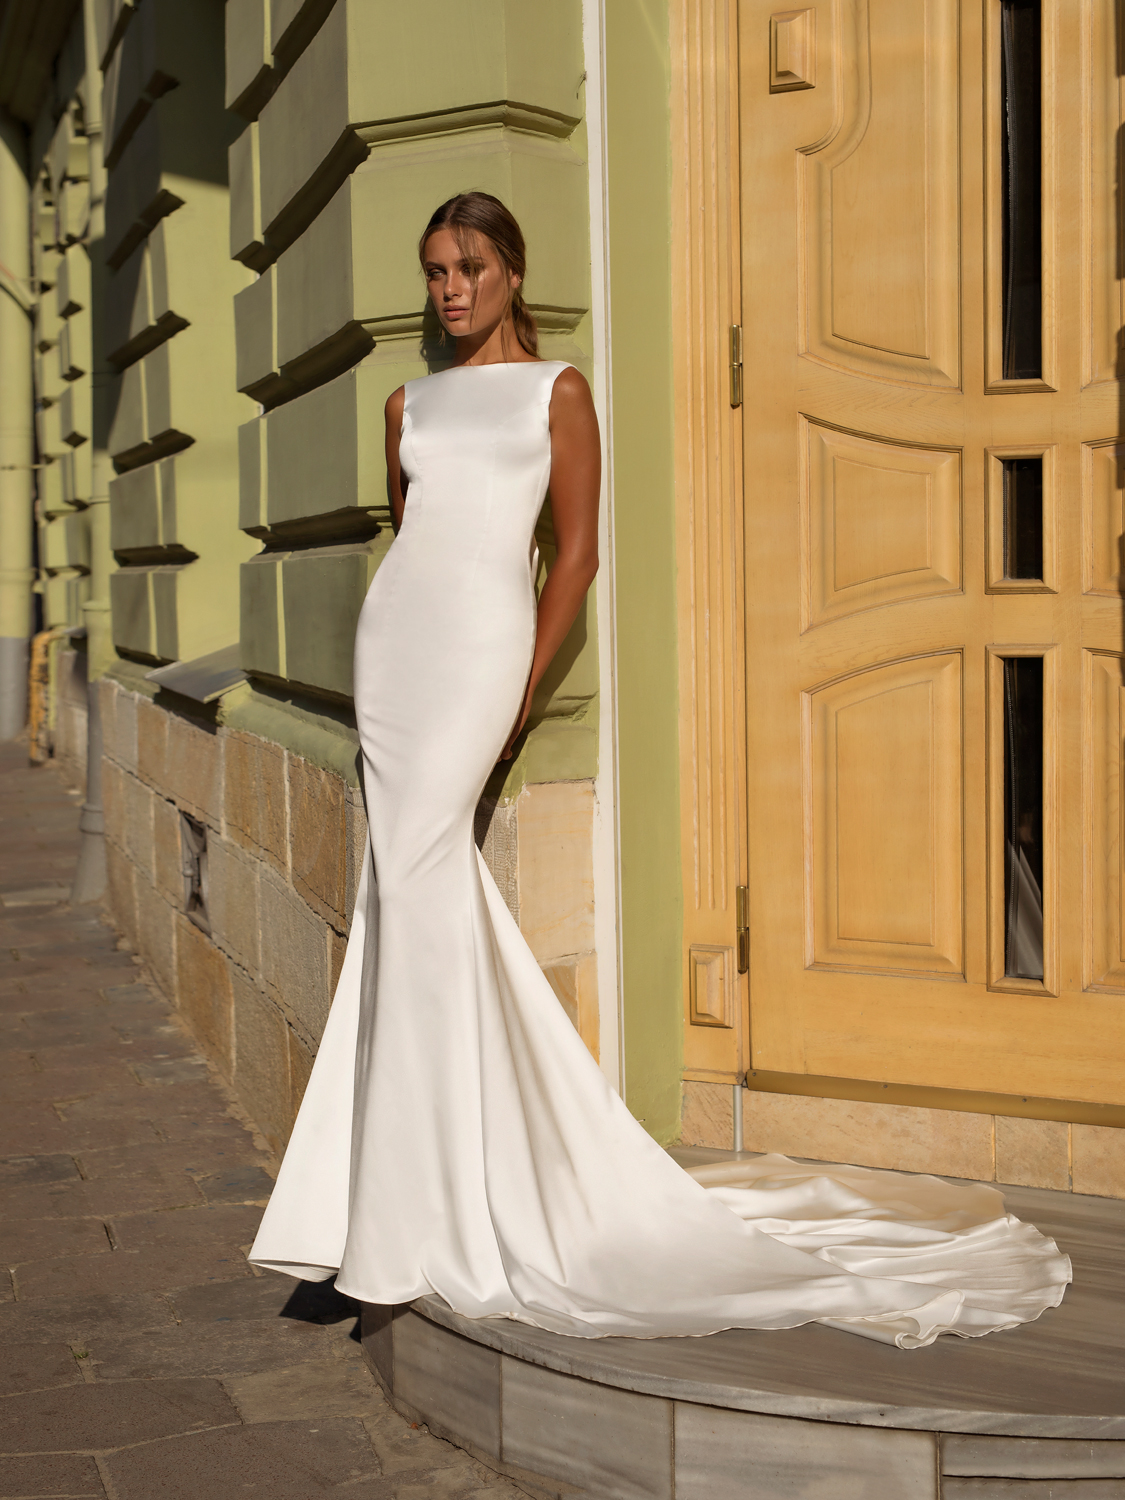 liri_designer_Wedding_Dress_zara.jpg